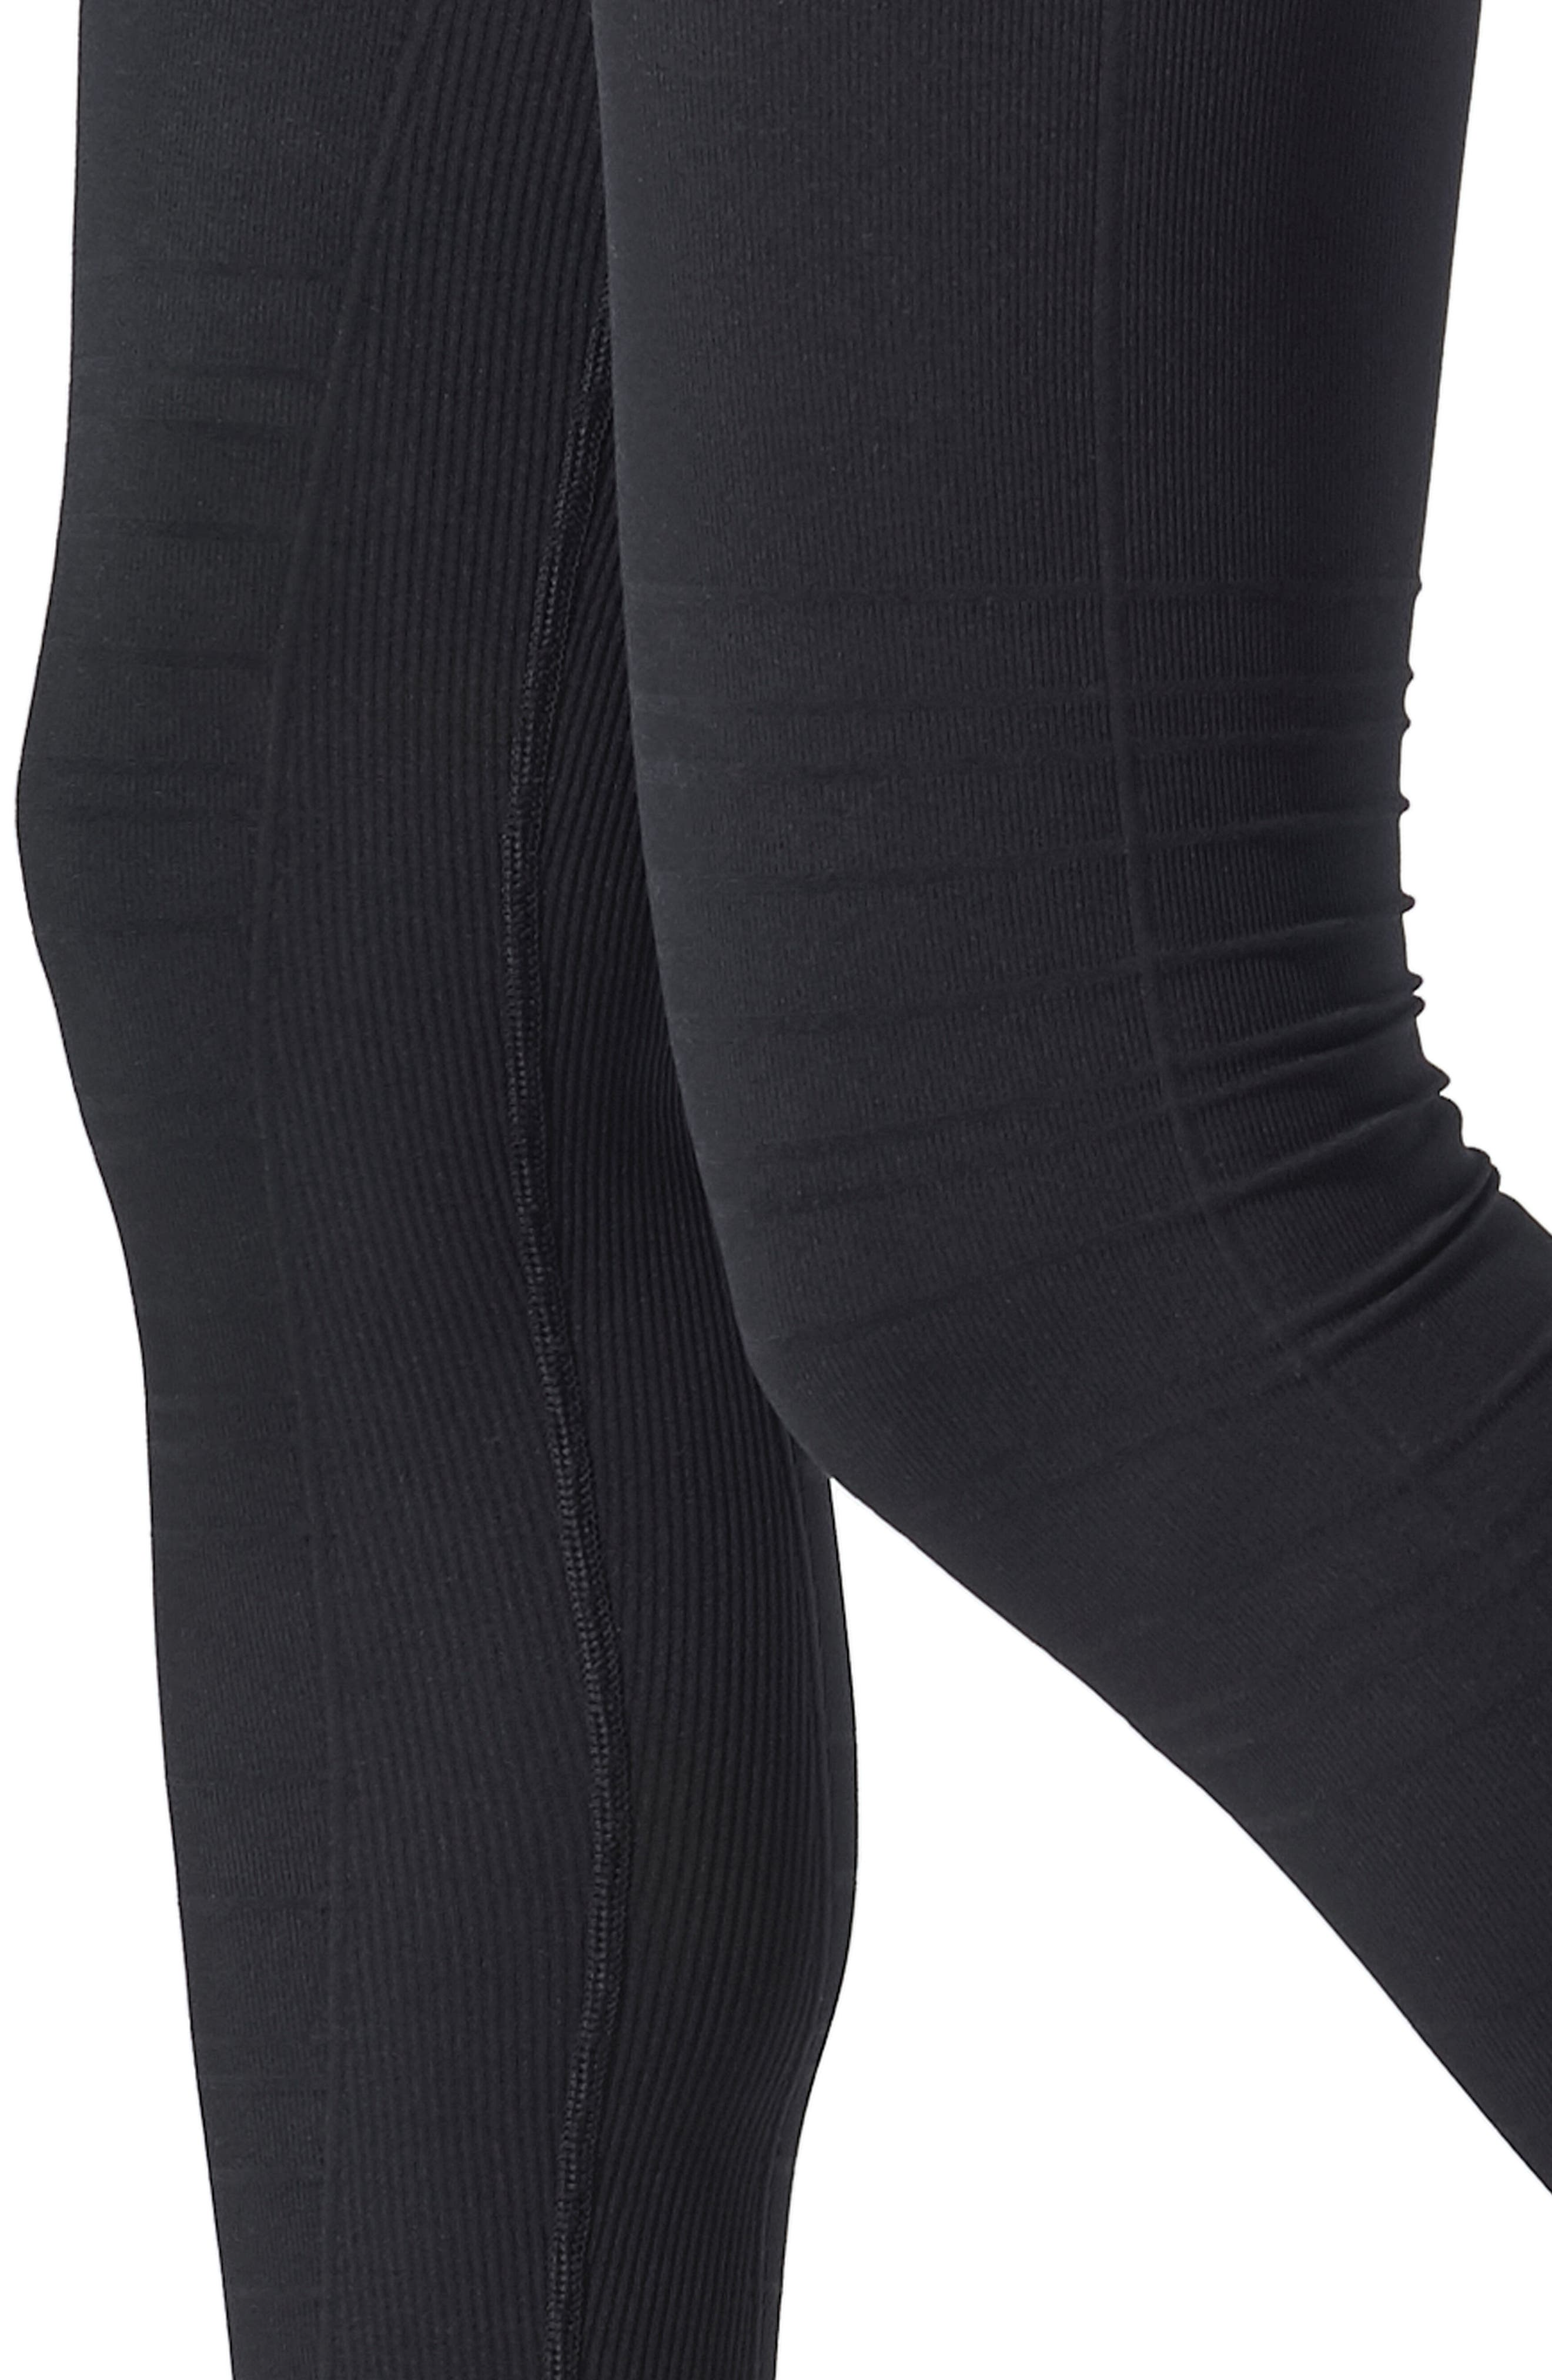 SportSupport<sup>®</sup> Hipster Contour Support Maternity/Postpartum Leggings,                             Alternate thumbnail 3, color,                             BLACK